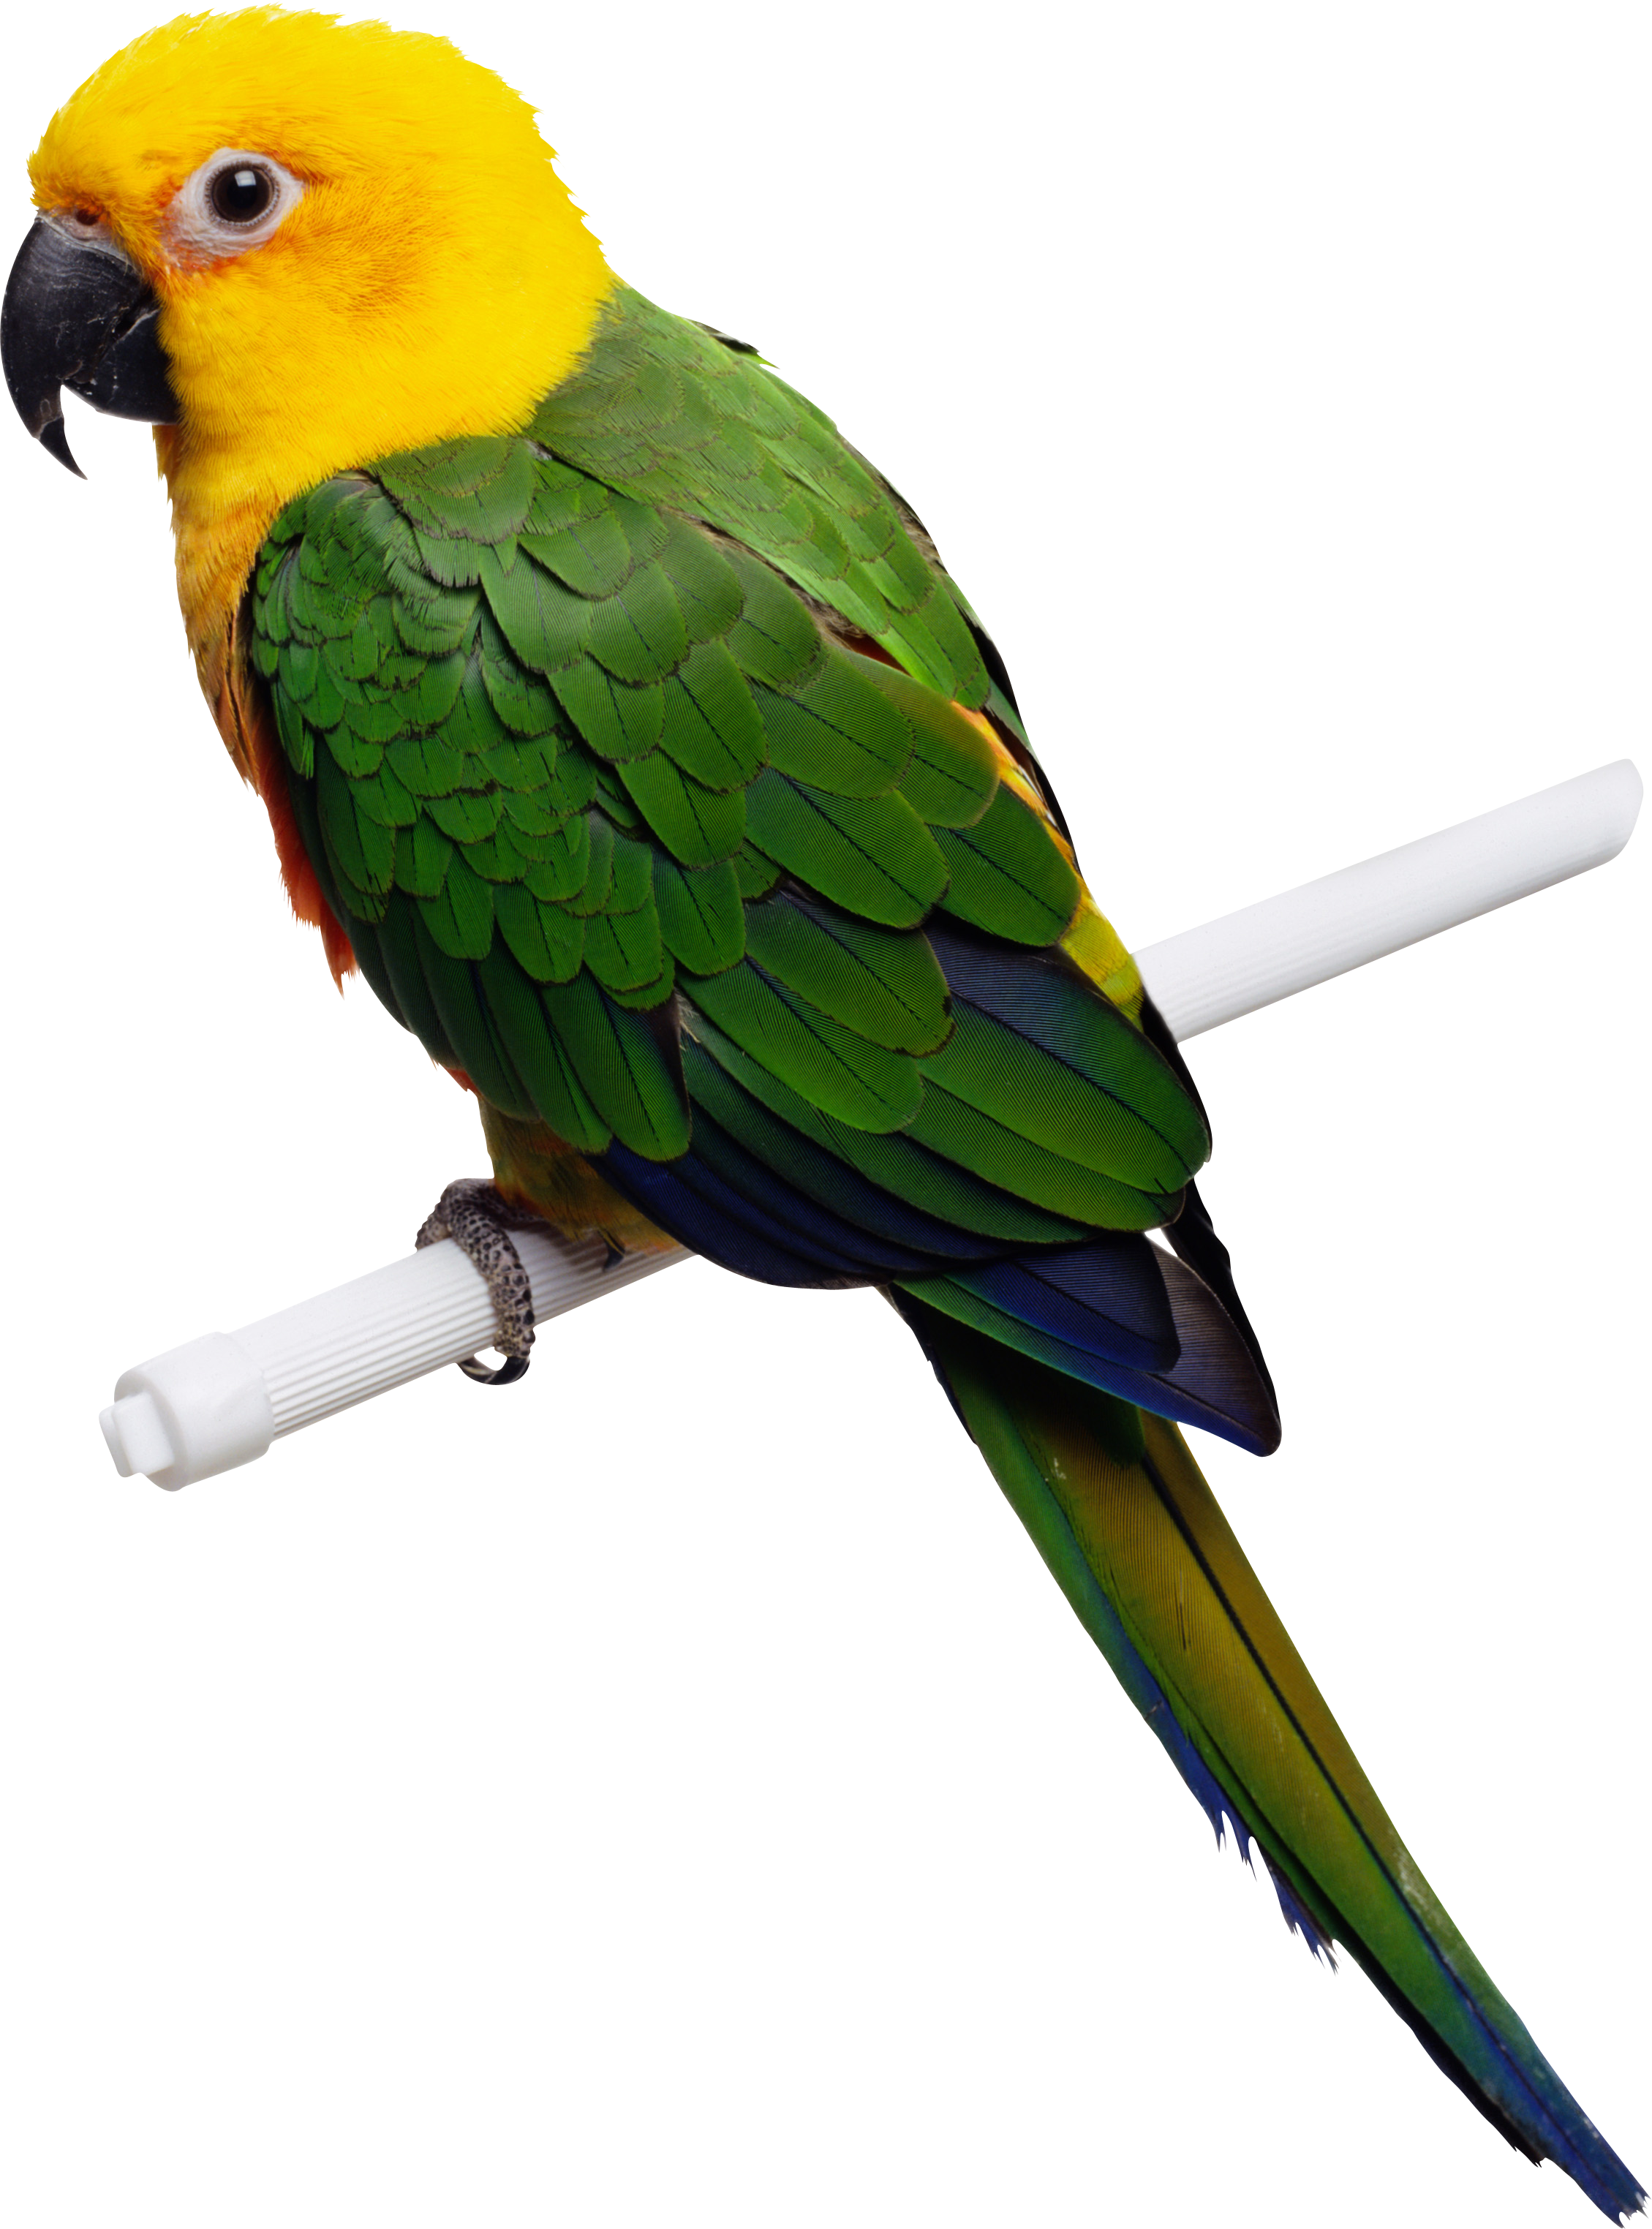 Green-yellow parrot PNG images, free download - PNG Free Download